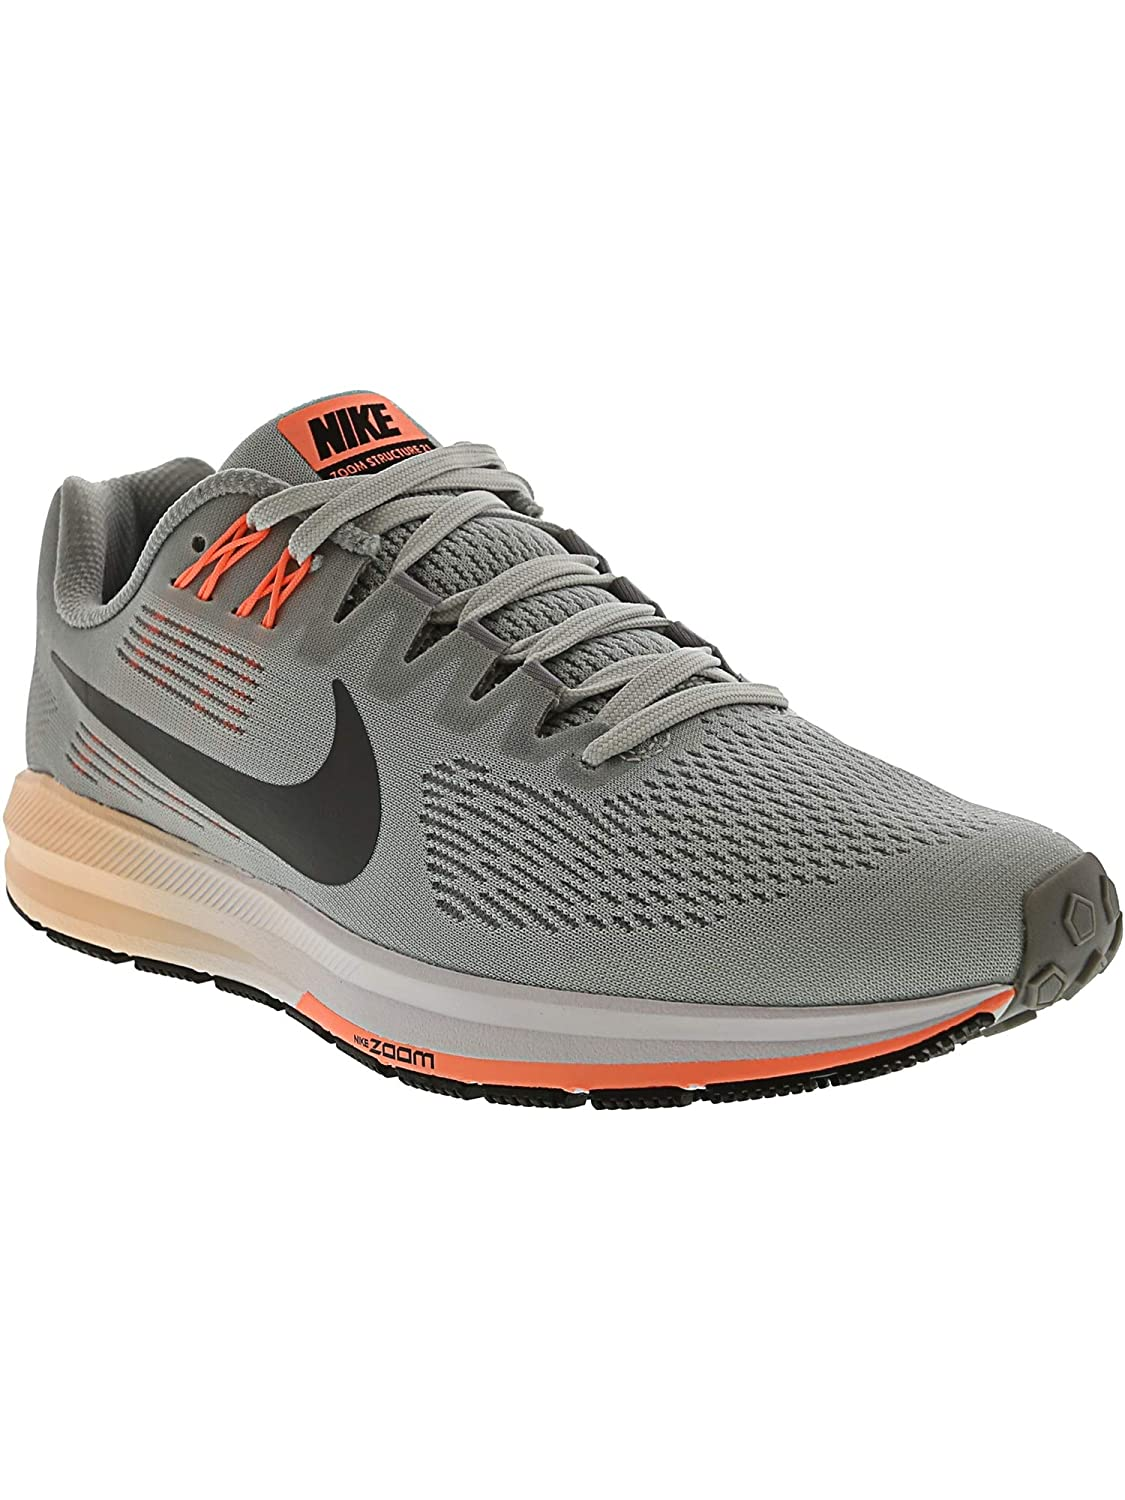 Nike Women s Air Zoom Structure 21 Running Shoe